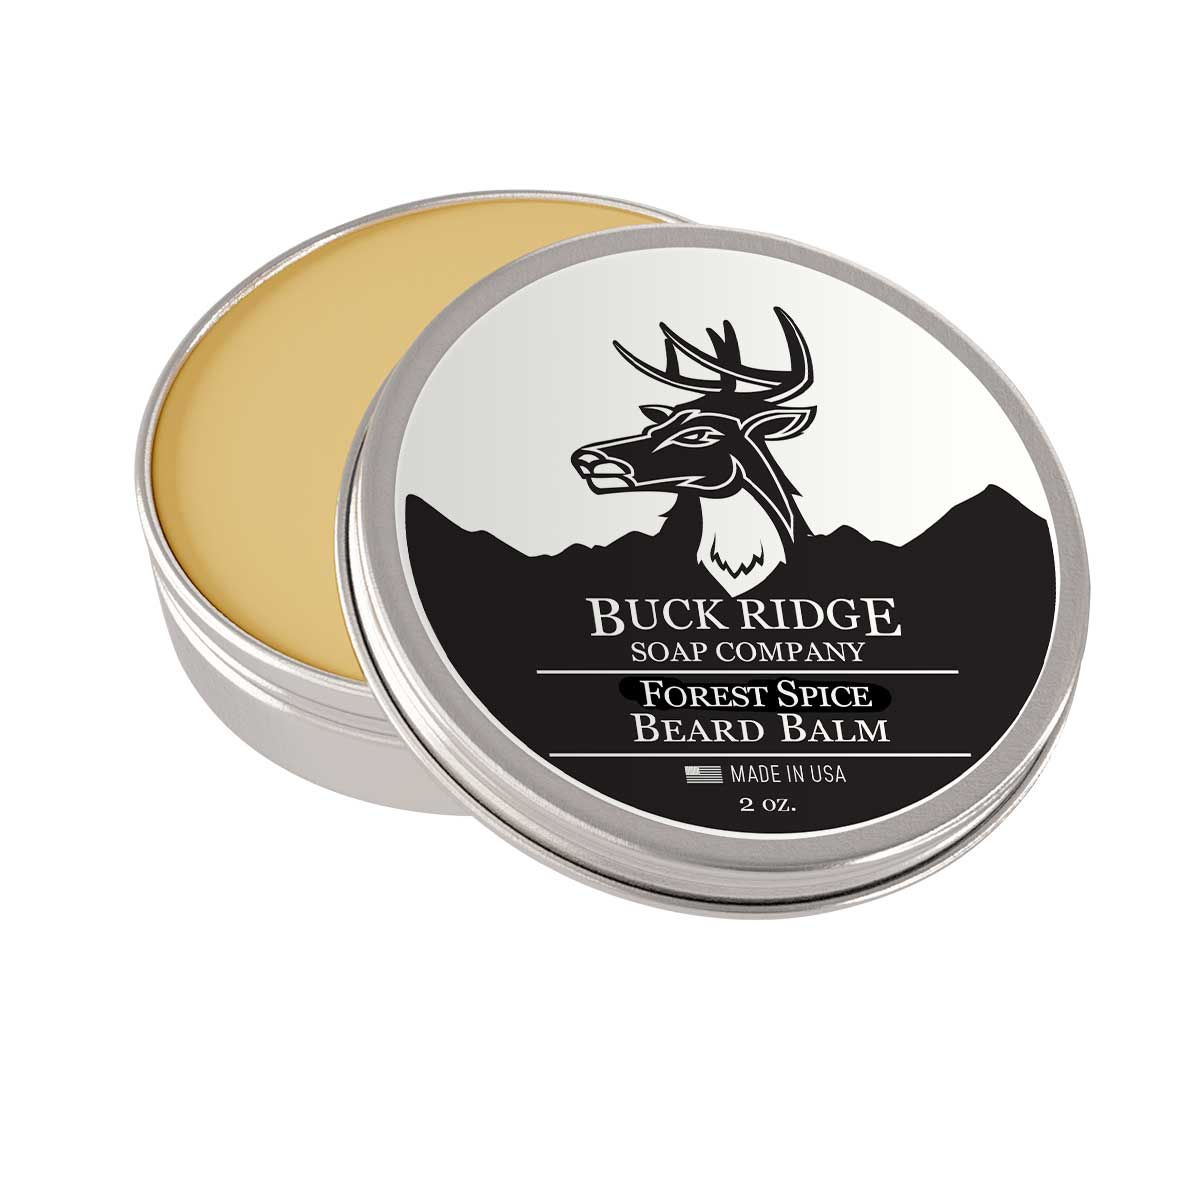 Forest Spice Beard Balm